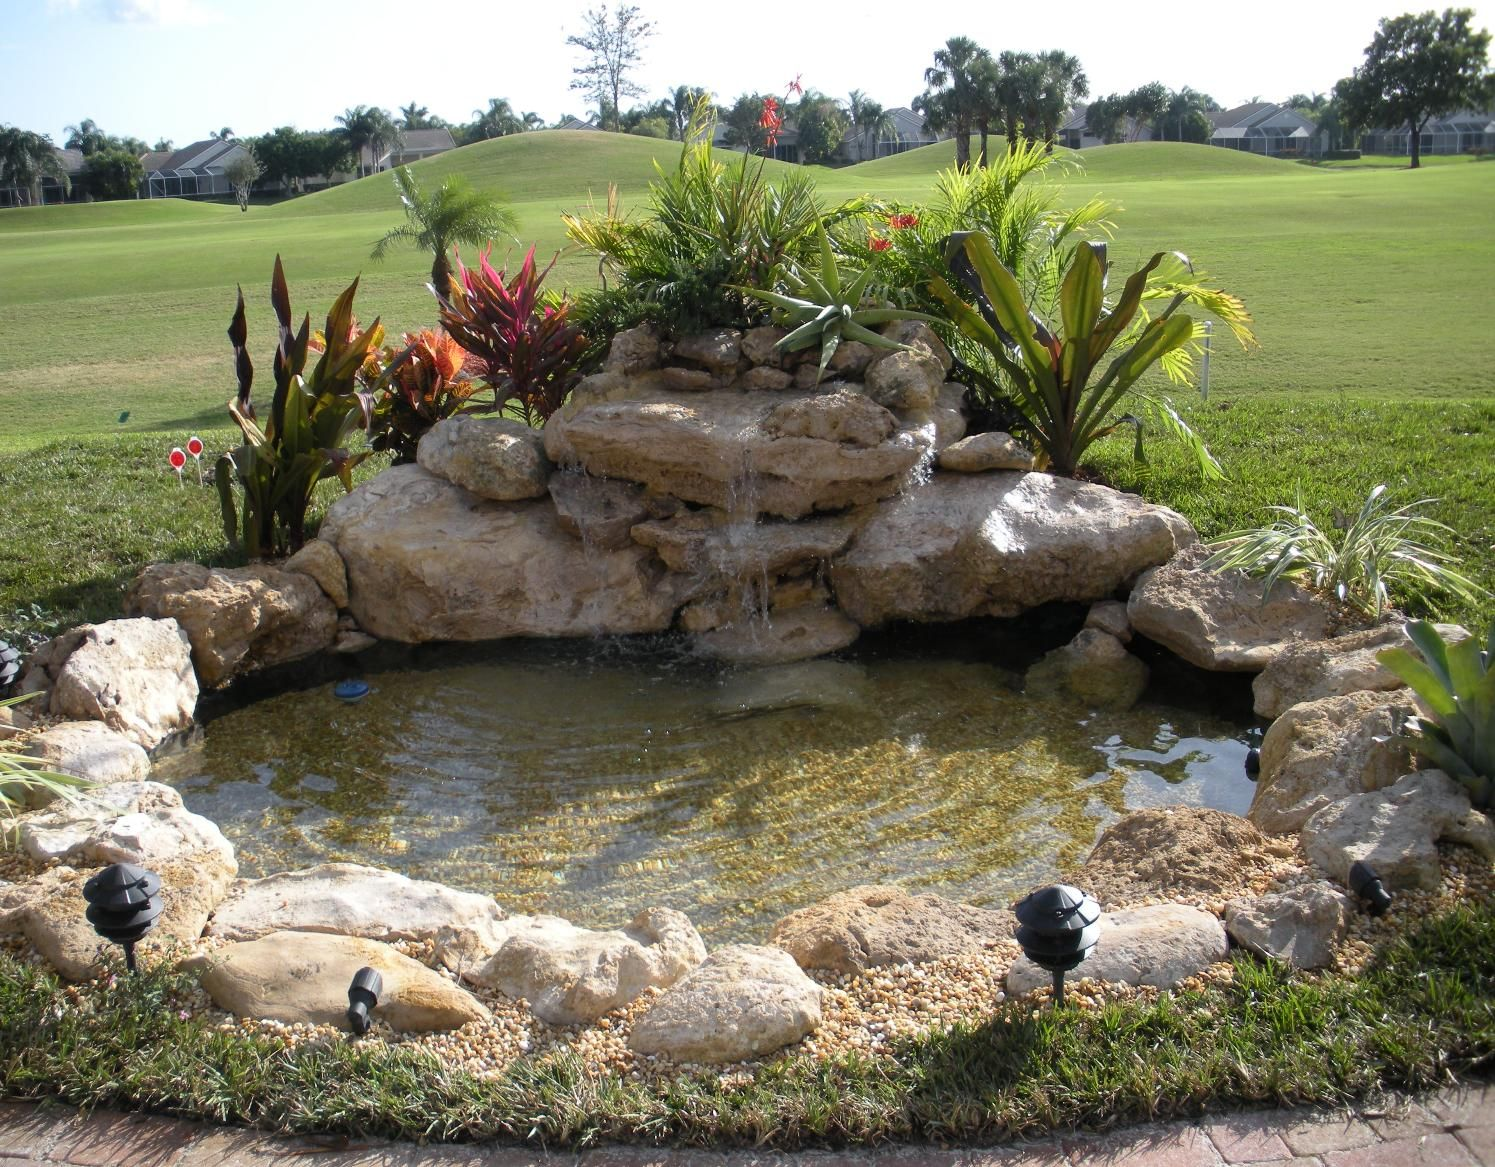 Landscaping waterfalls and fish ponds ways to maintain for Small yard ponds